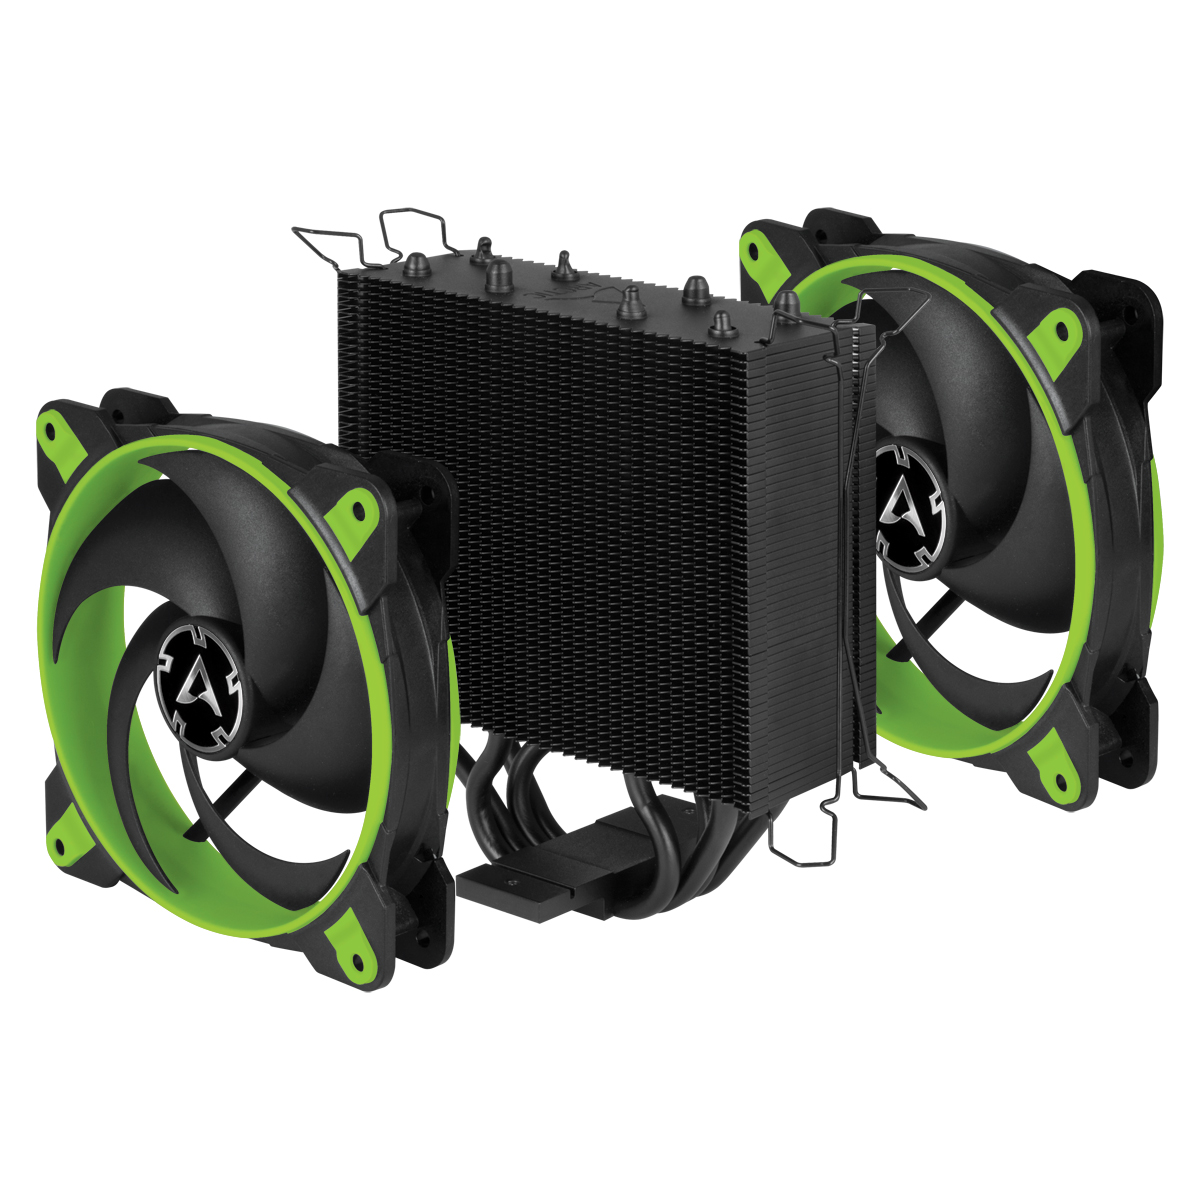 Ψύκτρα CPU Freezer 34 eSports DUO Green ACFRE00063A (MX-4 0.8gr included) image